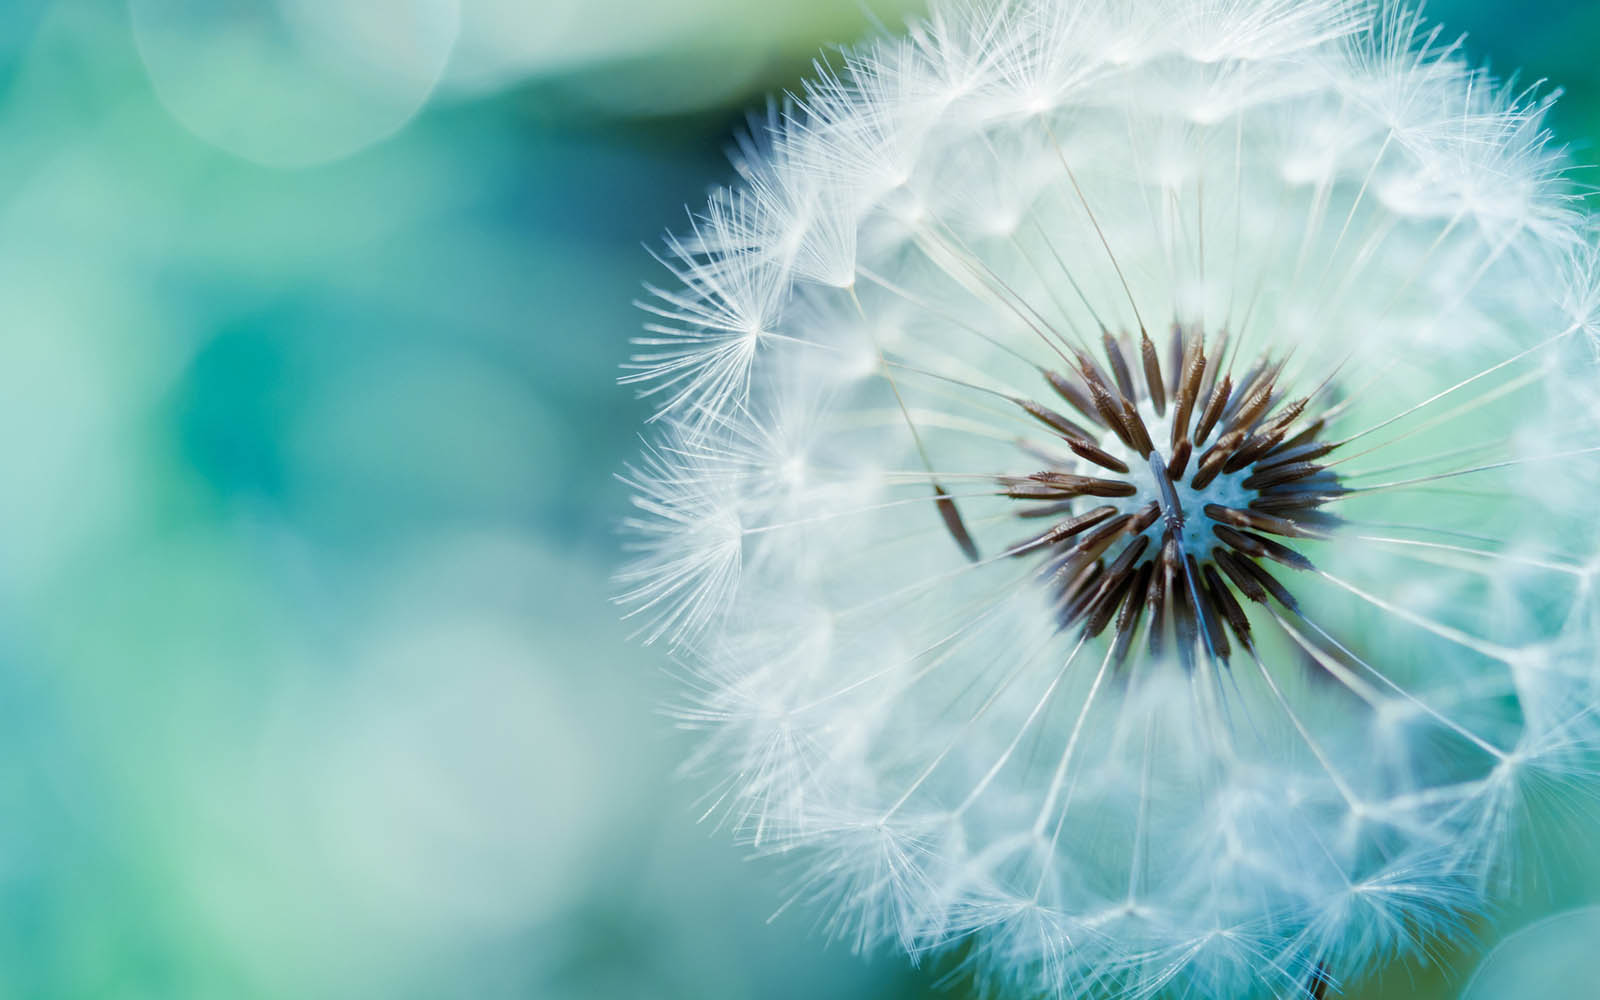 Dandelion Flowers Wallpapers 02